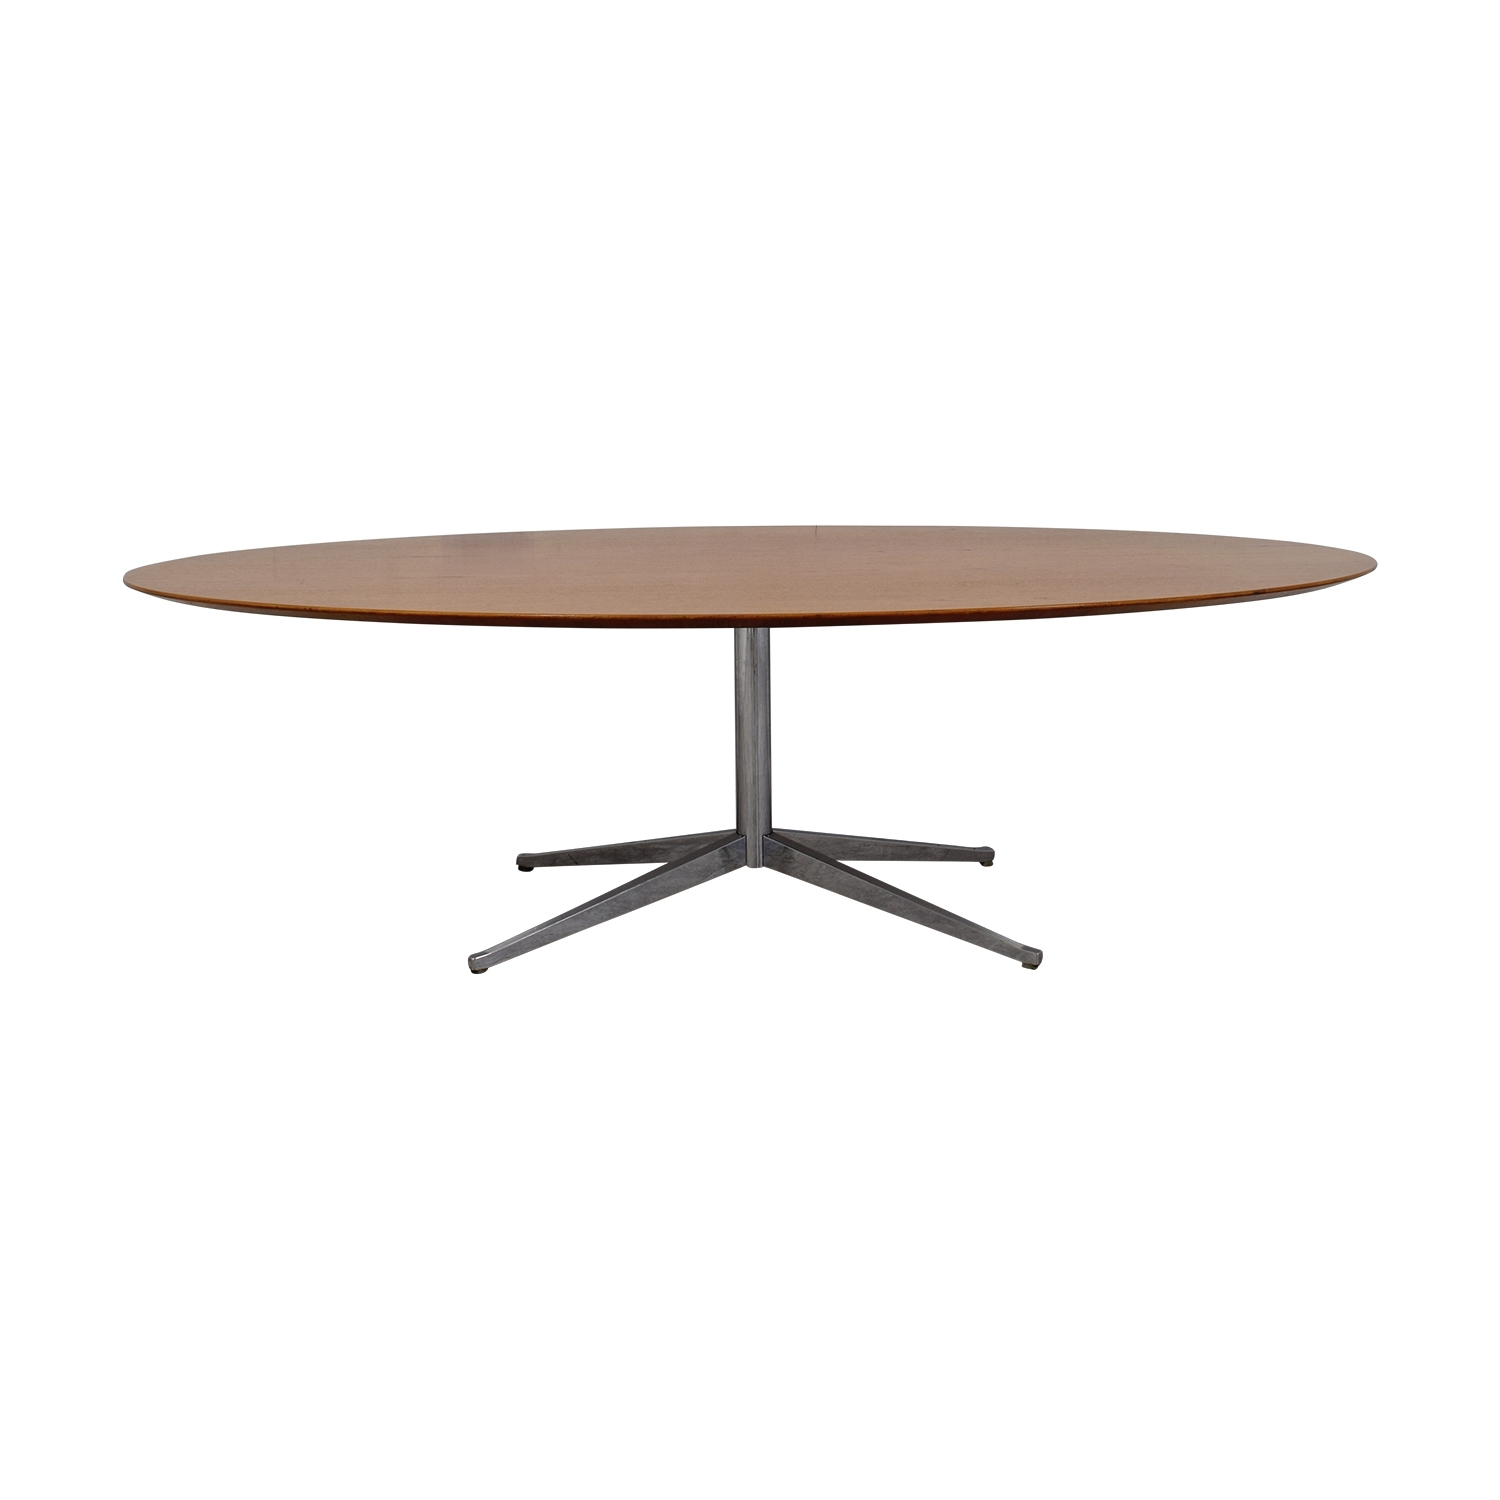 [%71% Off – Knoll Knoll Florence Oval Dining Table / Tables Inside Famous Oval Dining Tables For Sale|Oval Dining Tables For Sale Intended For Well Known 71% Off – Knoll Knoll Florence Oval Dining Table / Tables|Most Current Oval Dining Tables For Sale Inside 71% Off – Knoll Knoll Florence Oval Dining Table / Tables|Widely Used 71% Off – Knoll Knoll Florence Oval Dining Table / Tables Within Oval Dining Tables For Sale%] (View 2 of 25)